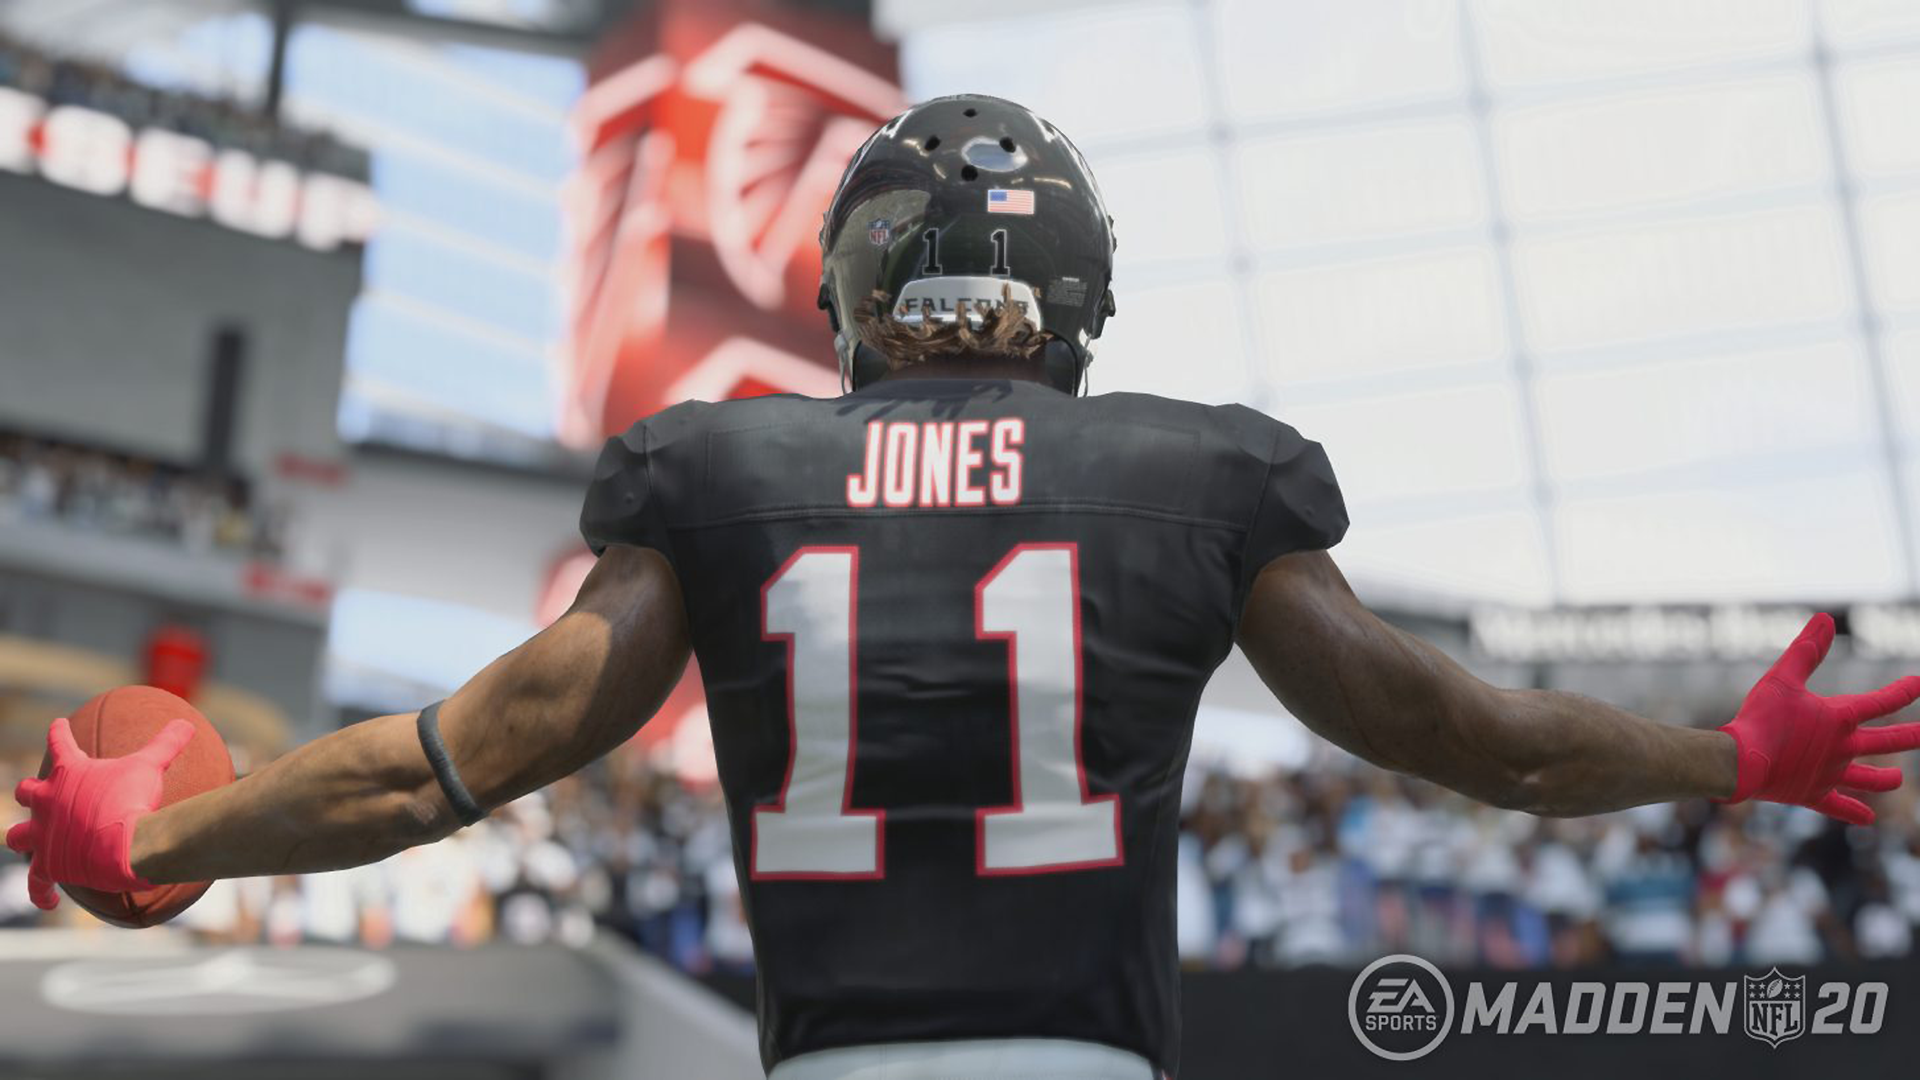 Madden 20' team ratings: The best, worst NFL teams to play